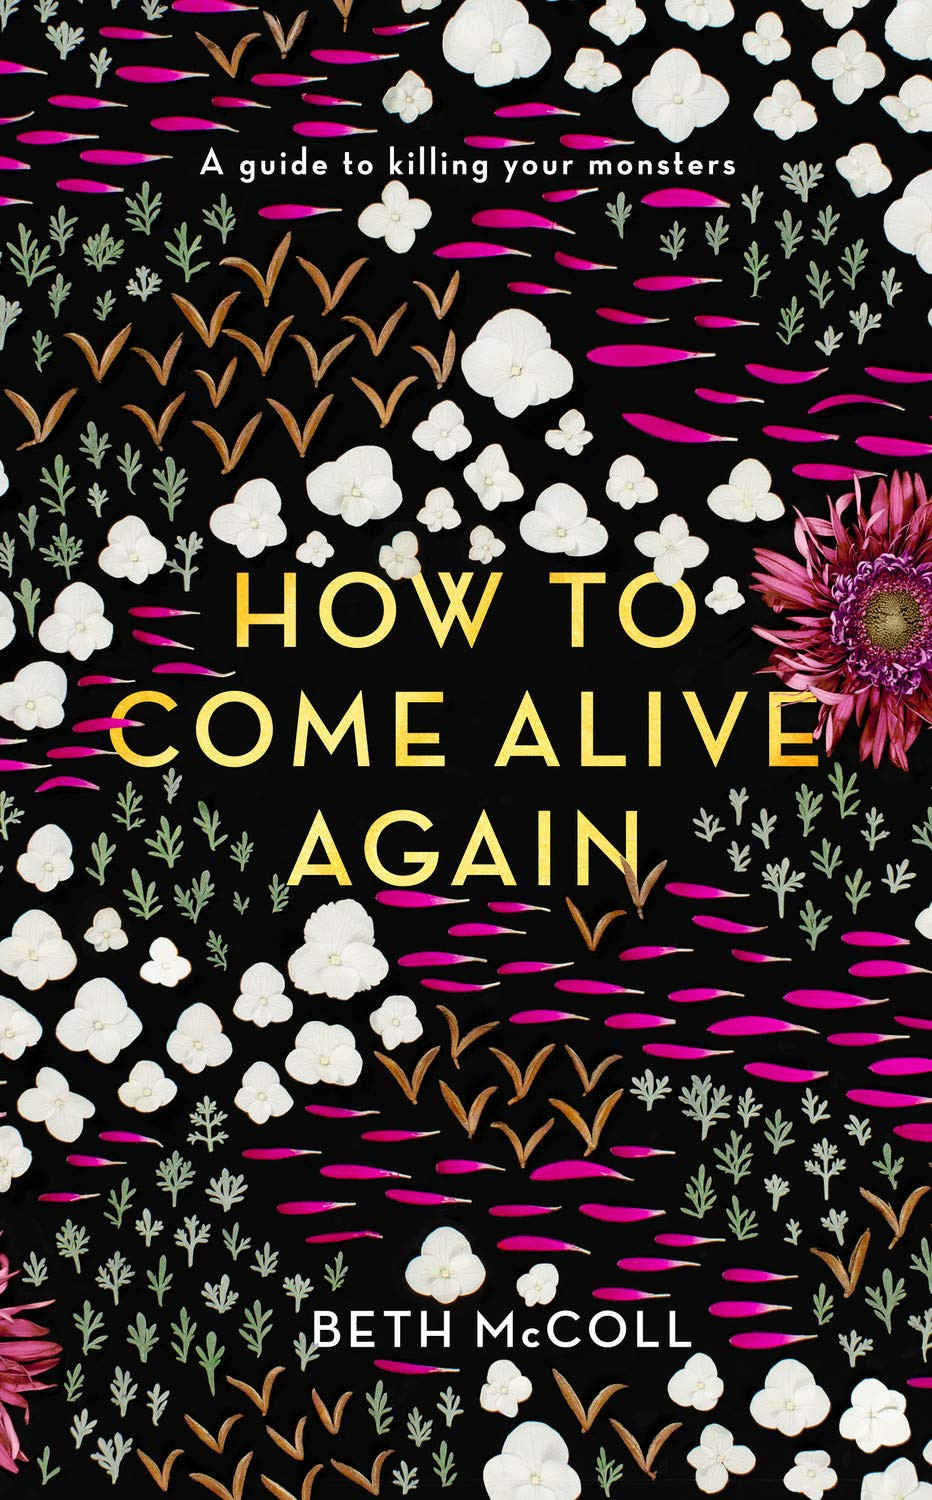 How to Come Alive Again: A Guide to Killing Your Monsters By Beth McColl